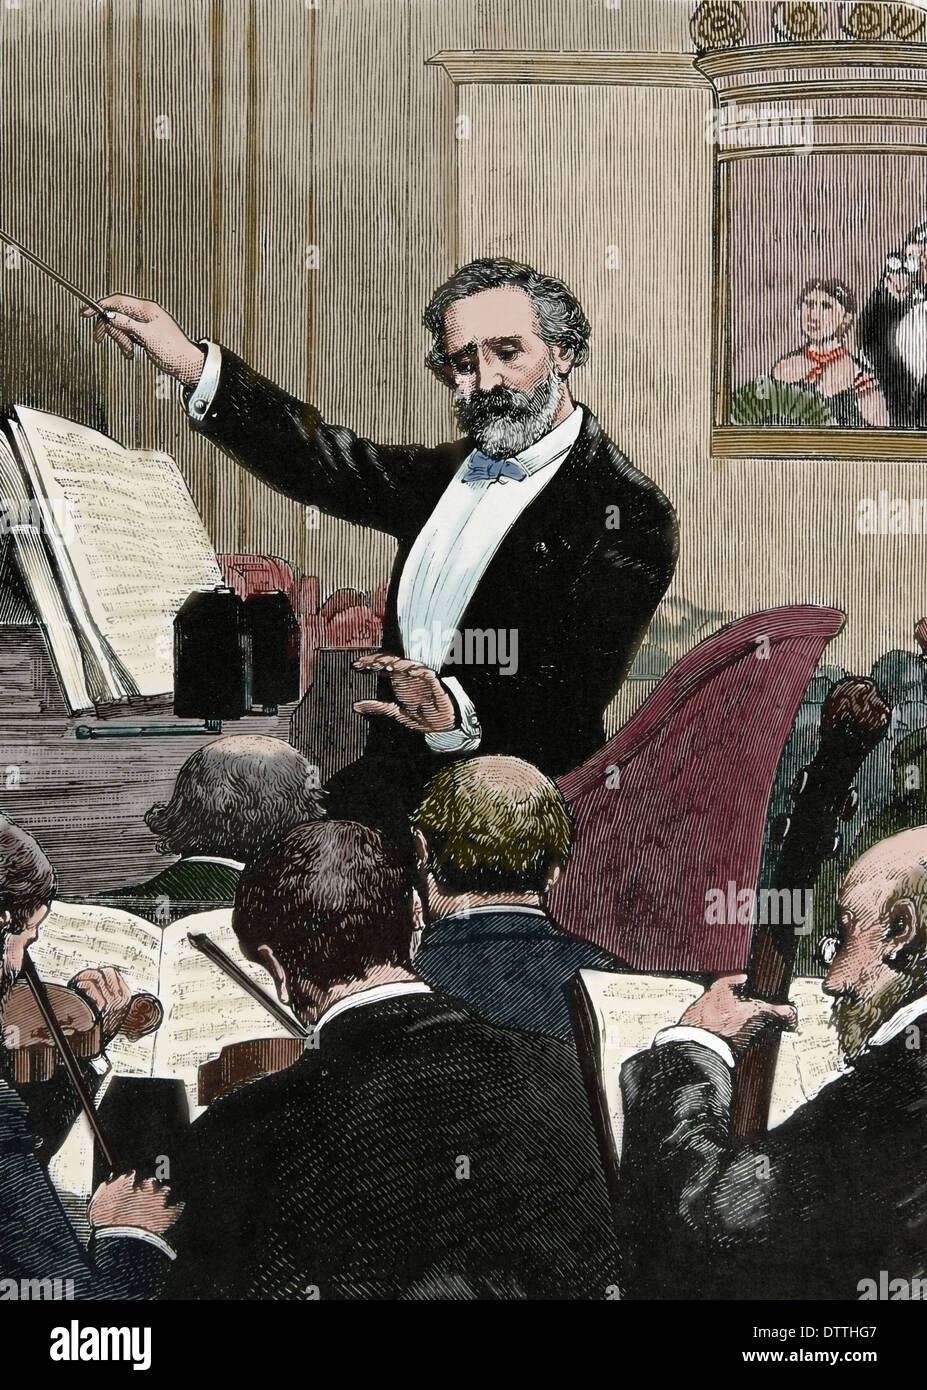 Giuseppe Verdi (1813-1901). Italian romantic composer. 'France, Paris. Verdi conducting one of his own operas'.Color engraving - Stock Image